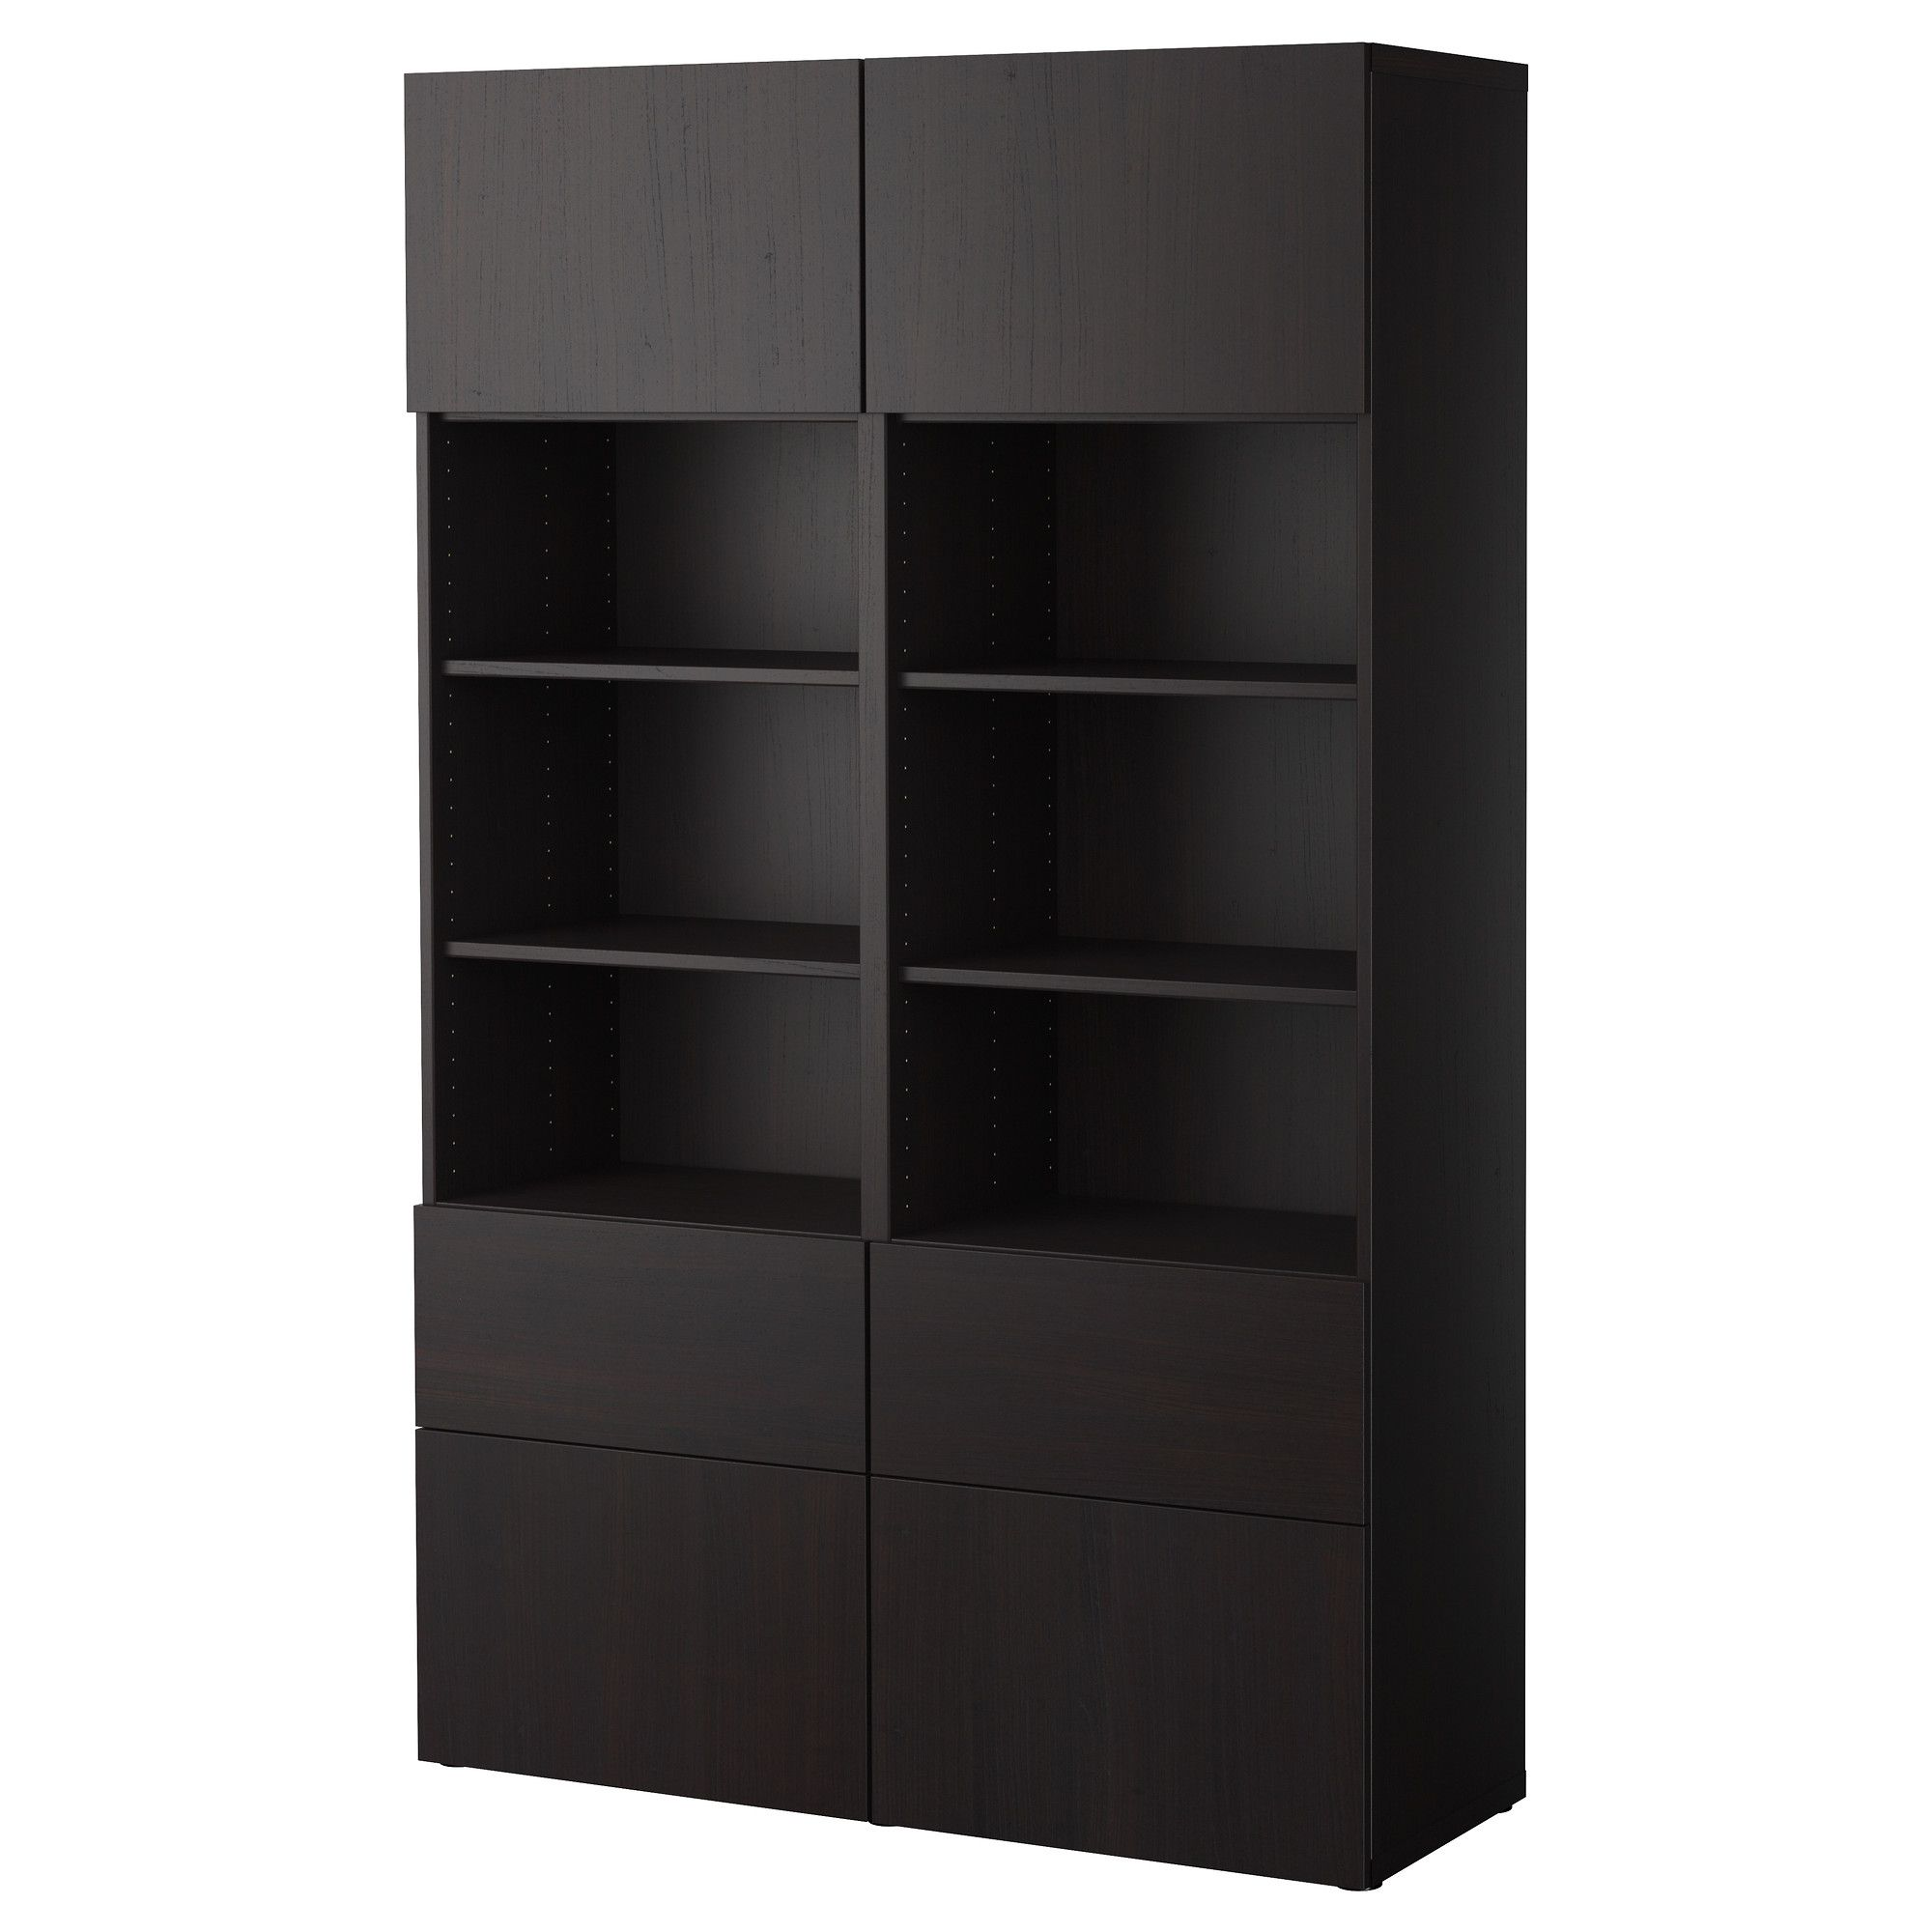 best storage combination w doors drawers black brown ikea 210 organization. Black Bedroom Furniture Sets. Home Design Ideas